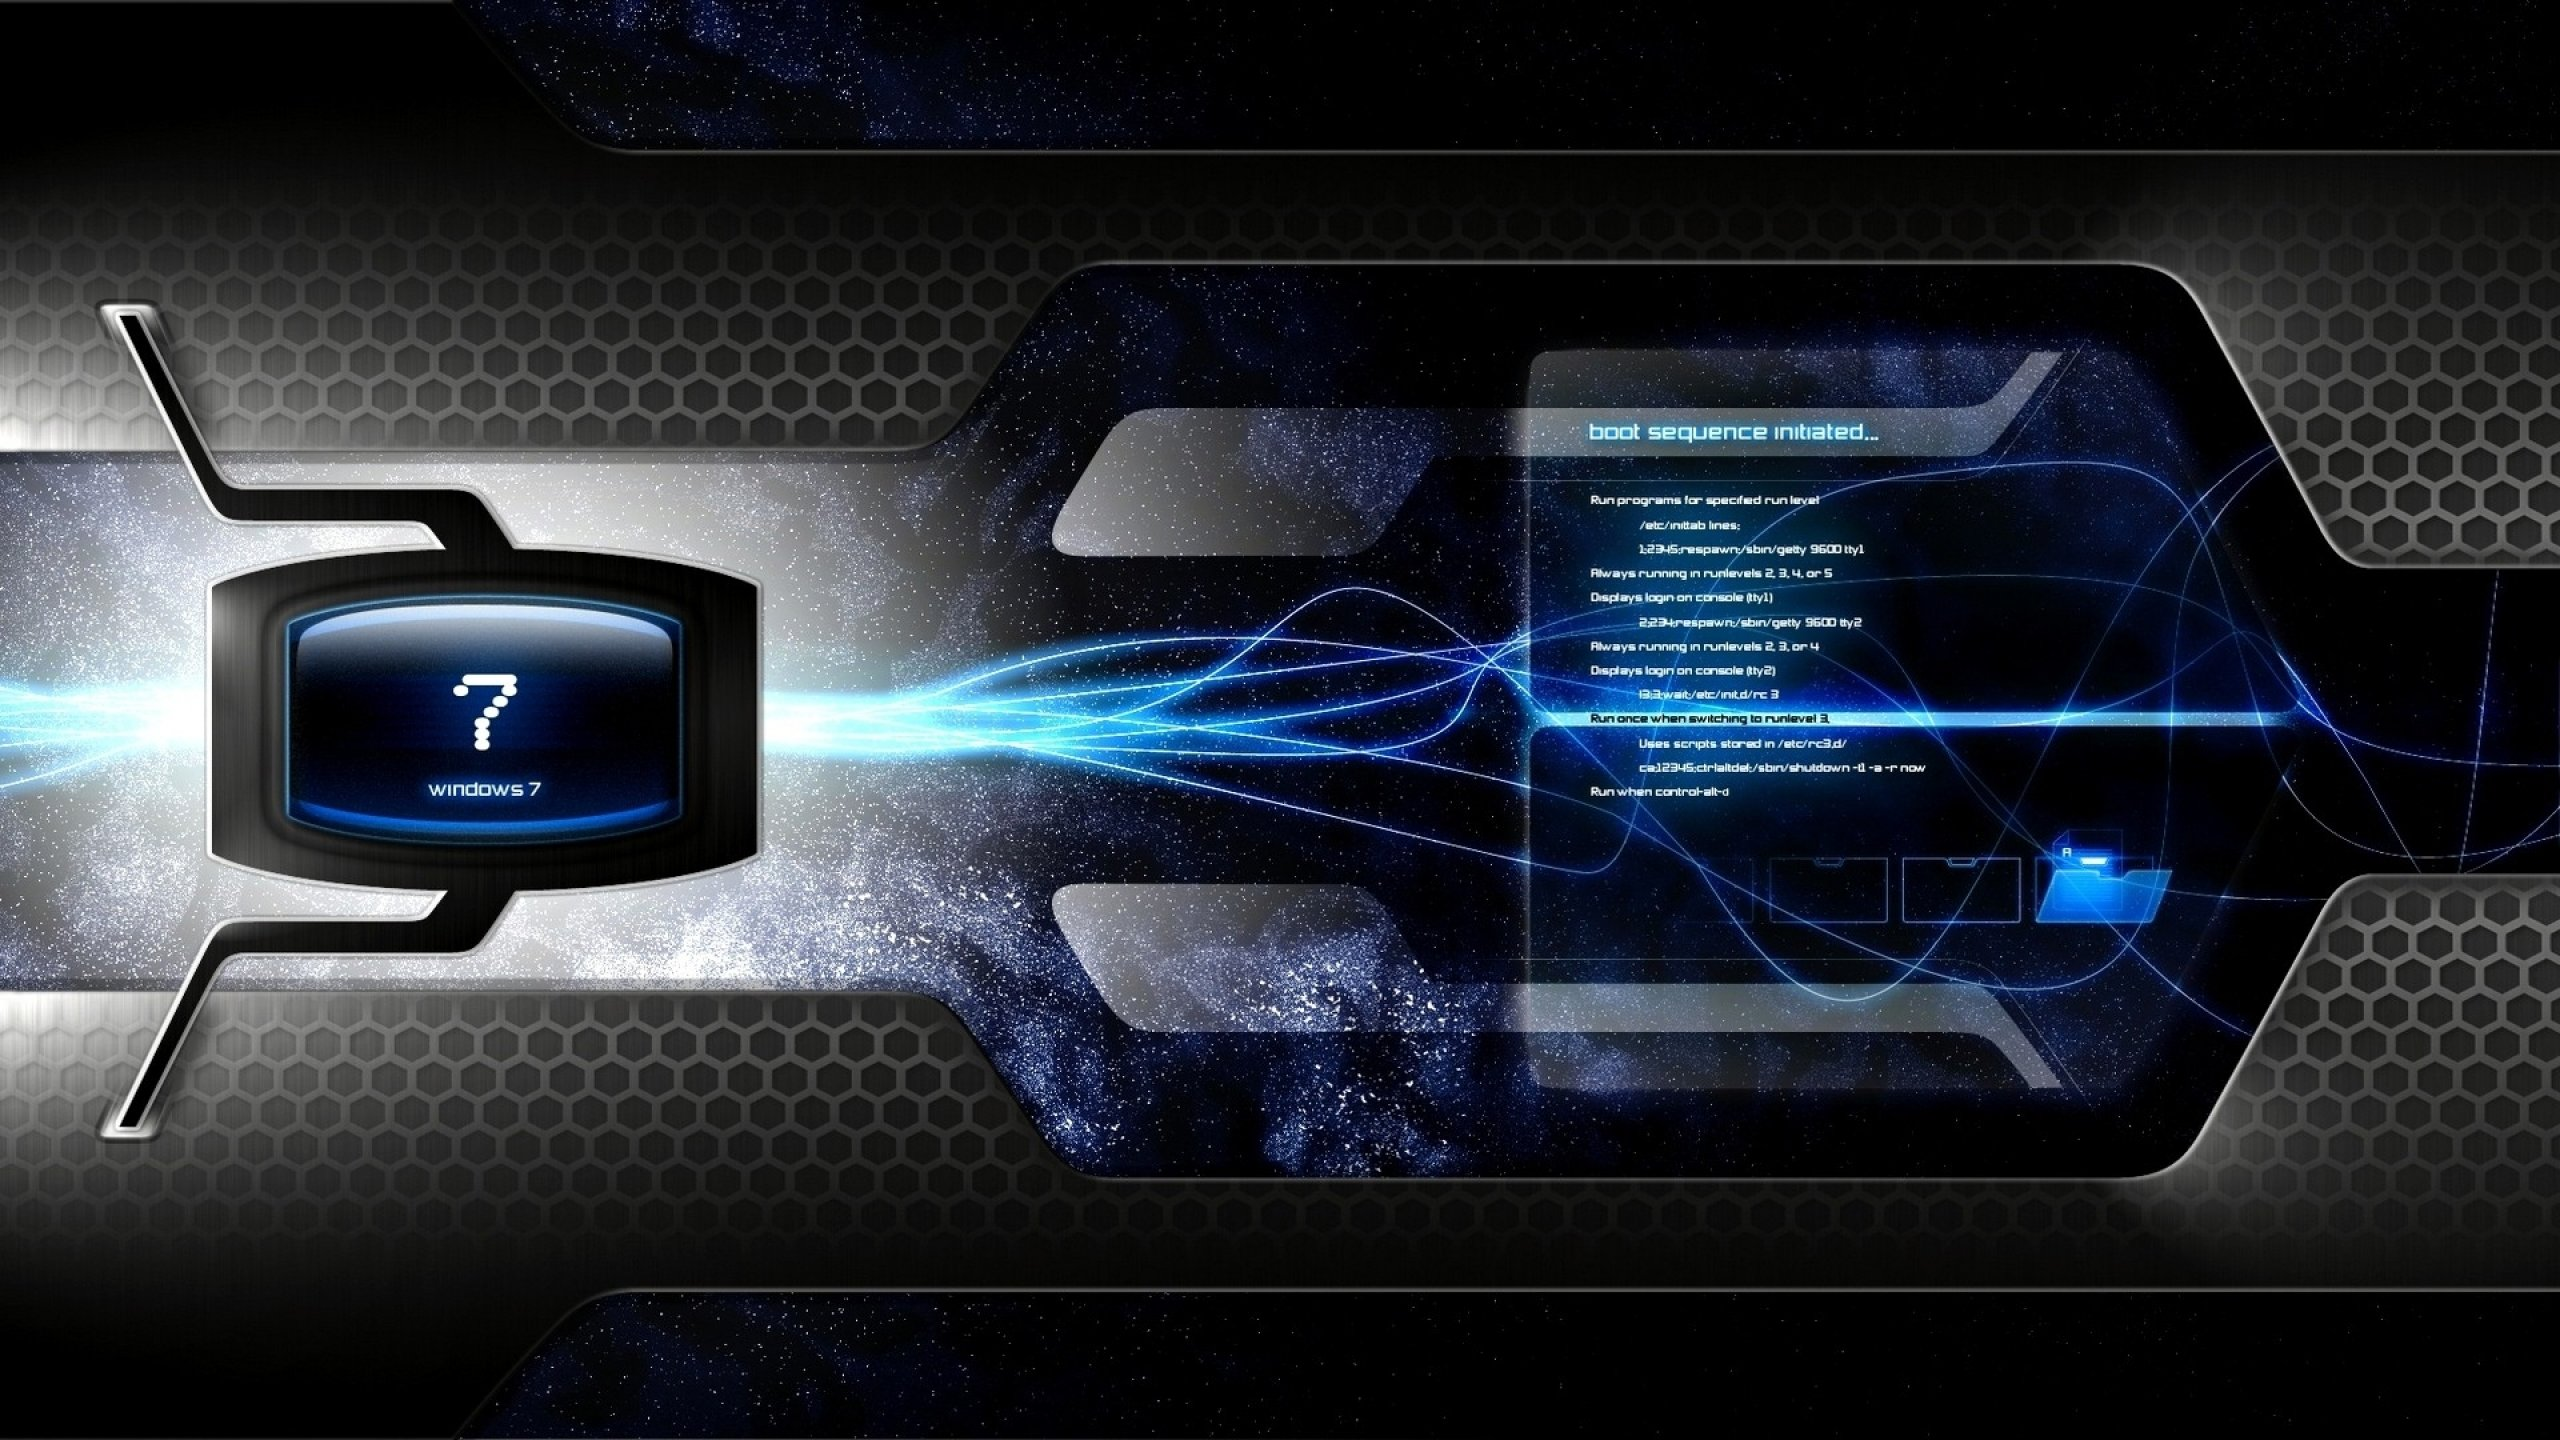 Download hd 2560x1440 Windows 7 computer background ID:156038 for free